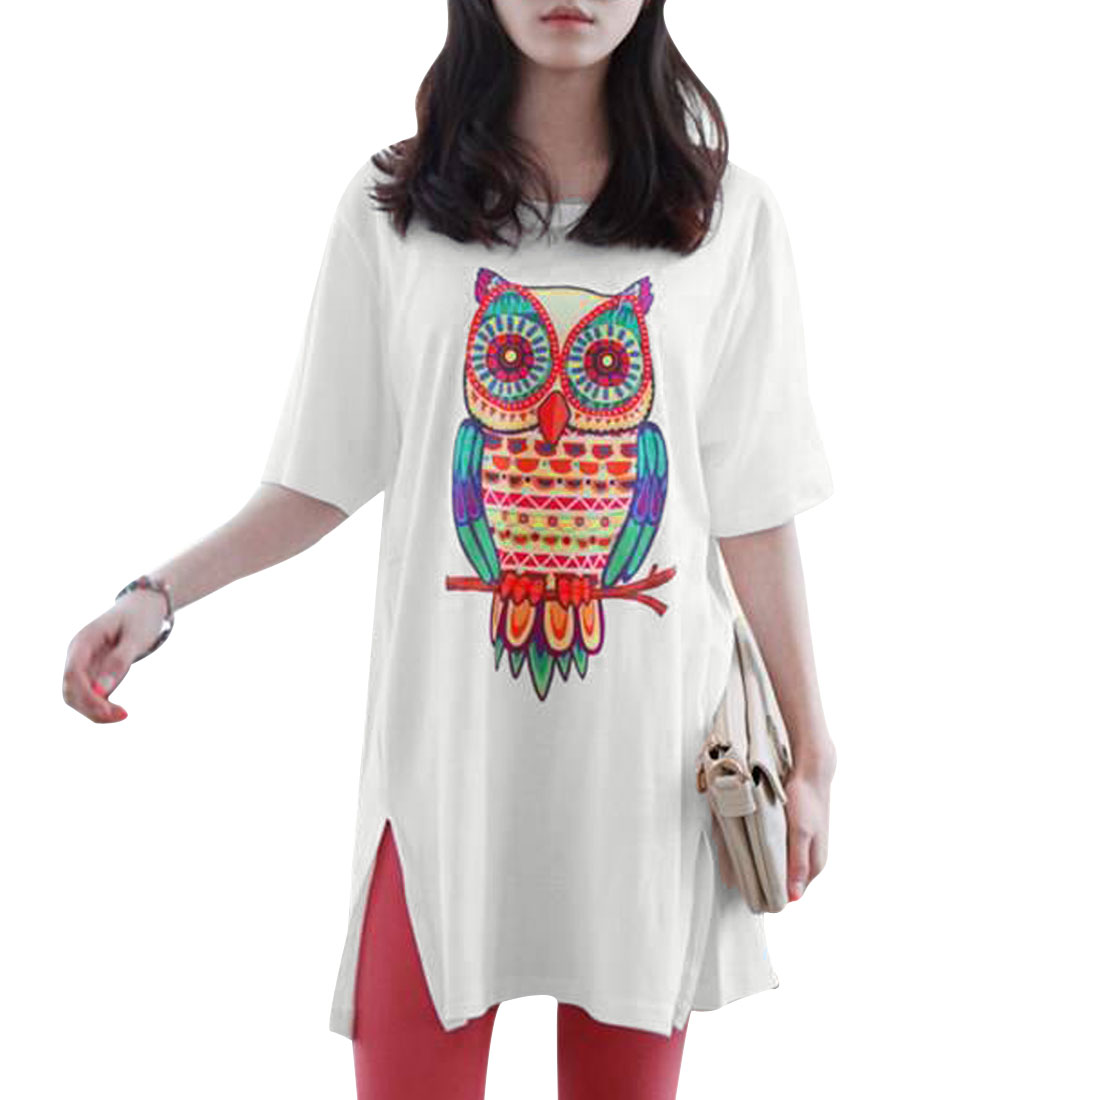 Woman New Fashion Round Neck Short Sleeve Owl Pattern White Tunic Shirt M